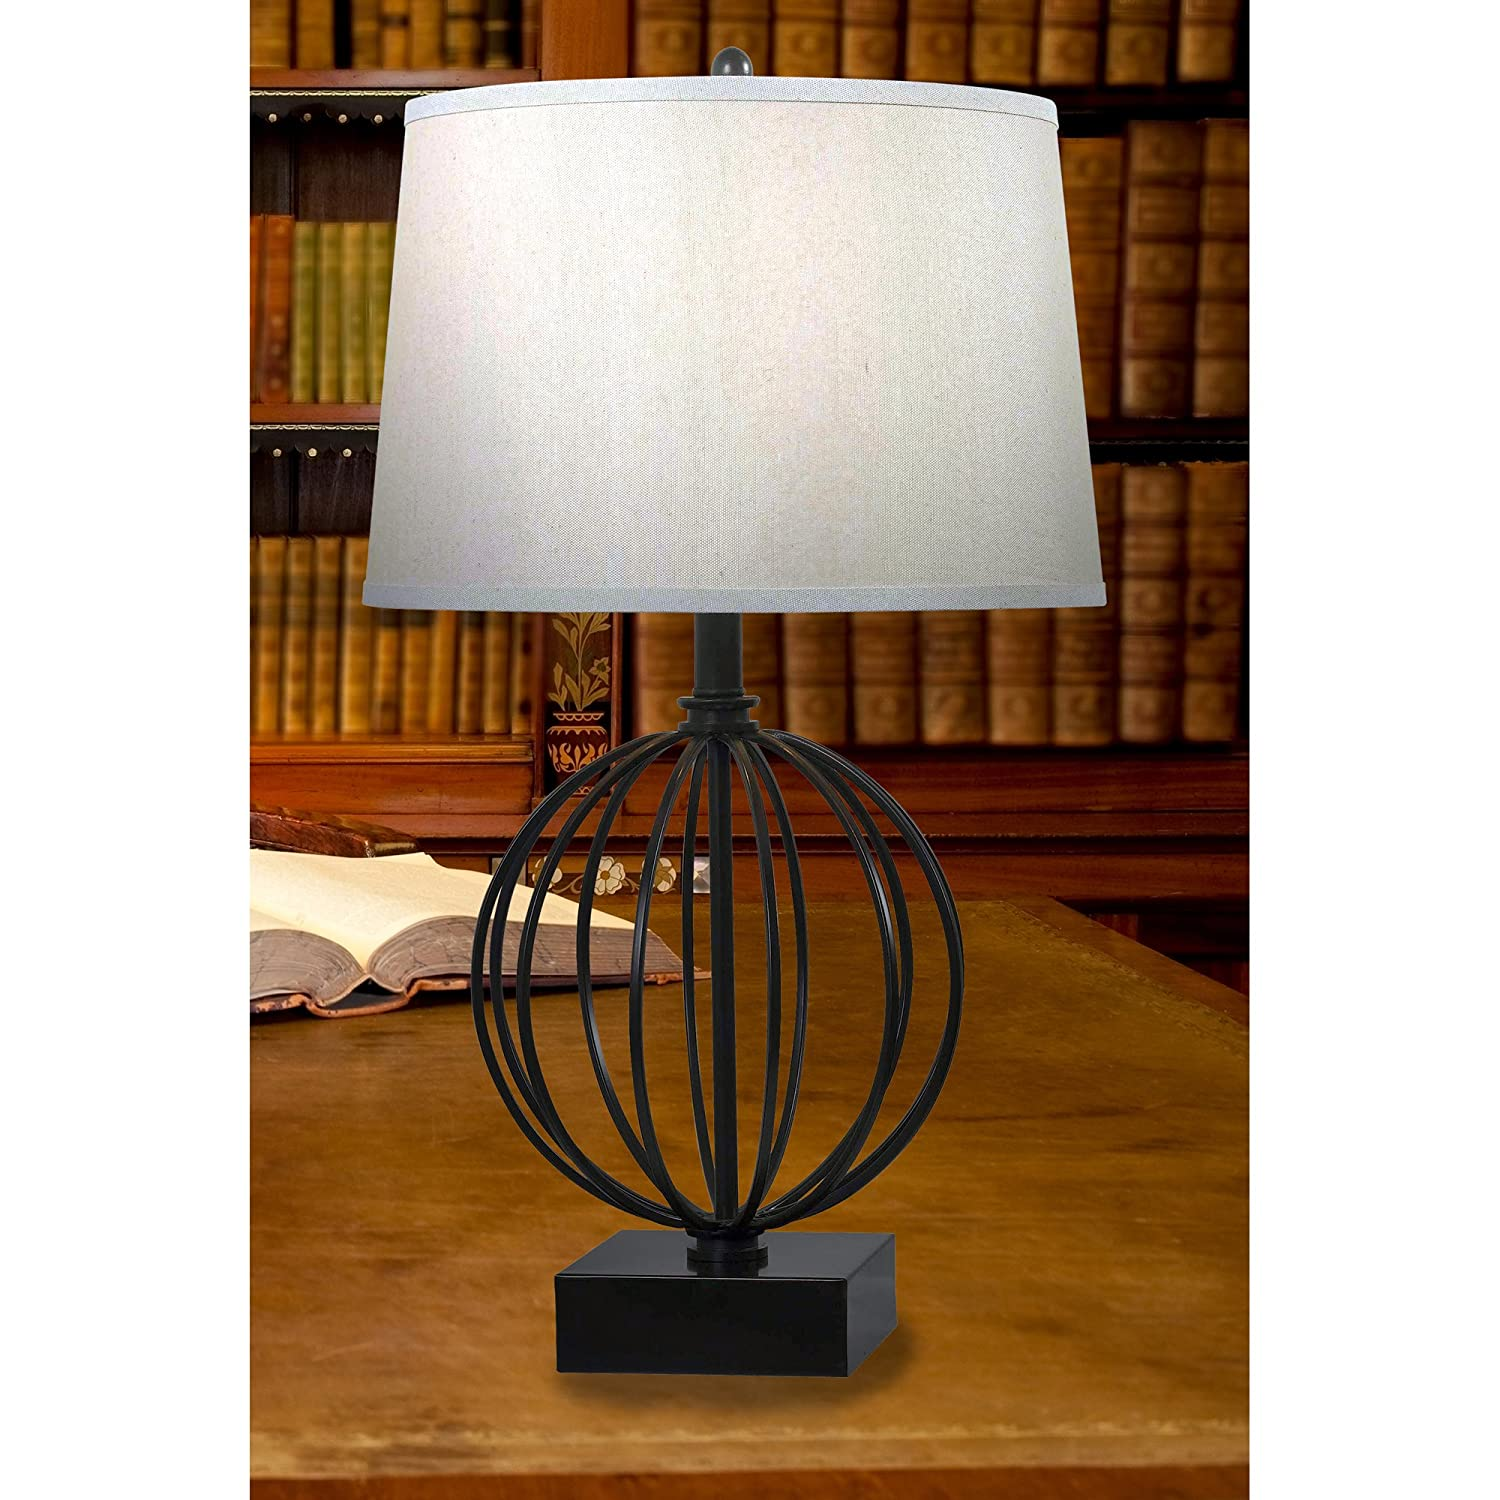 Kenroy home 32102orb globus table lamp amazon geotapseo Choice Image